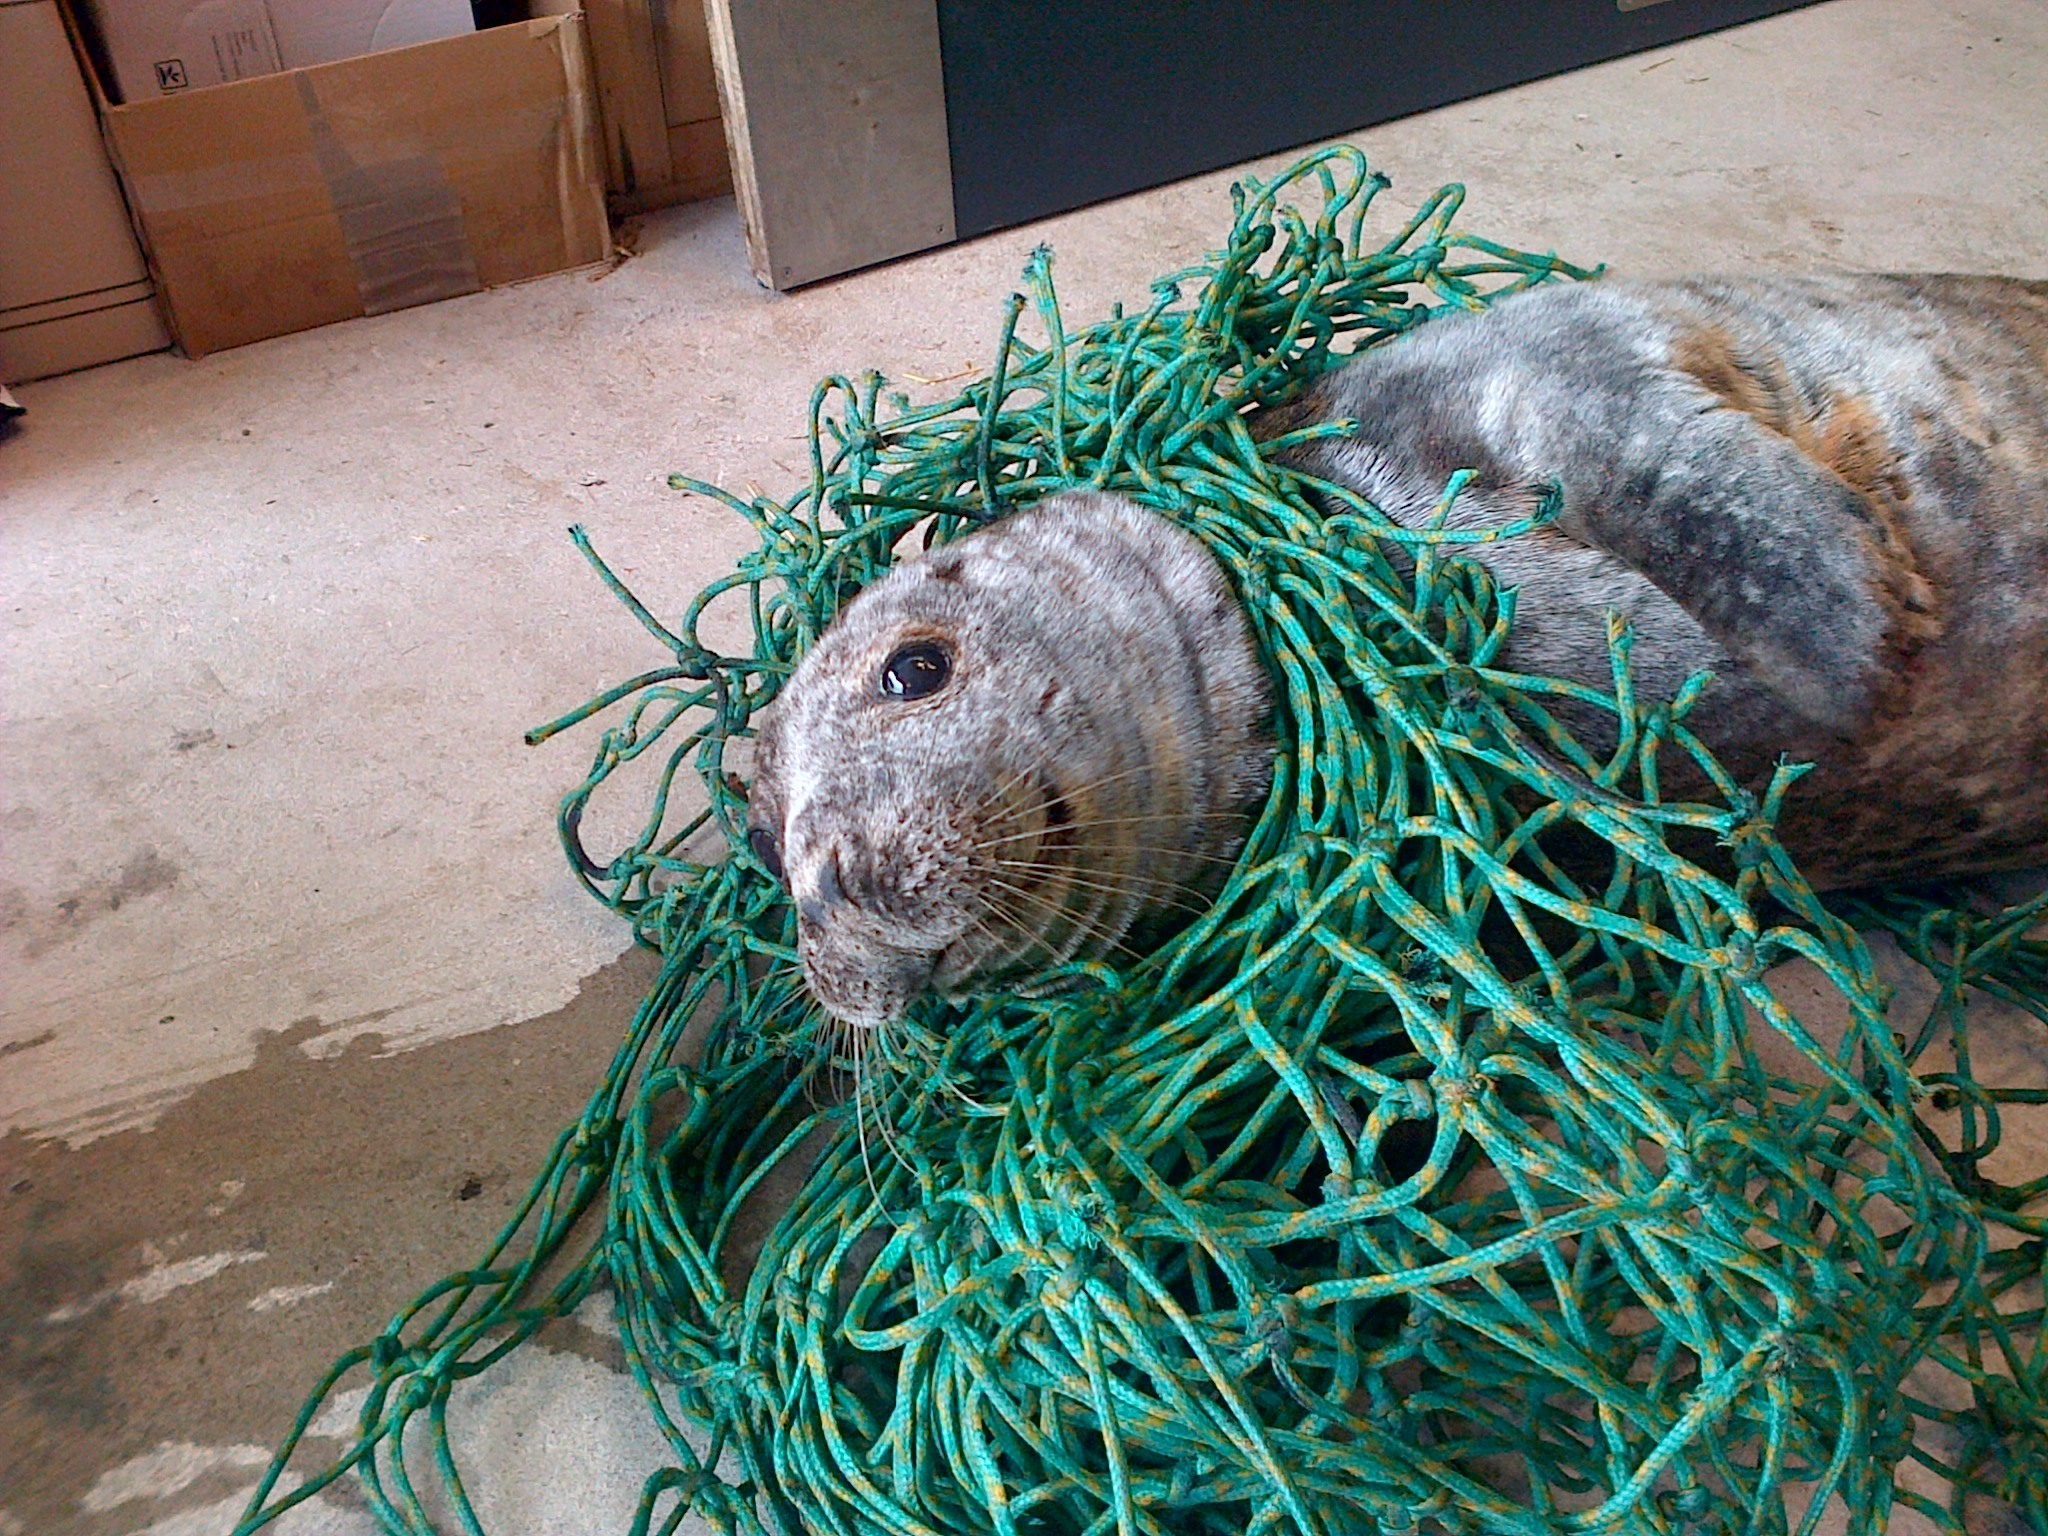 The seal was tangled in netting